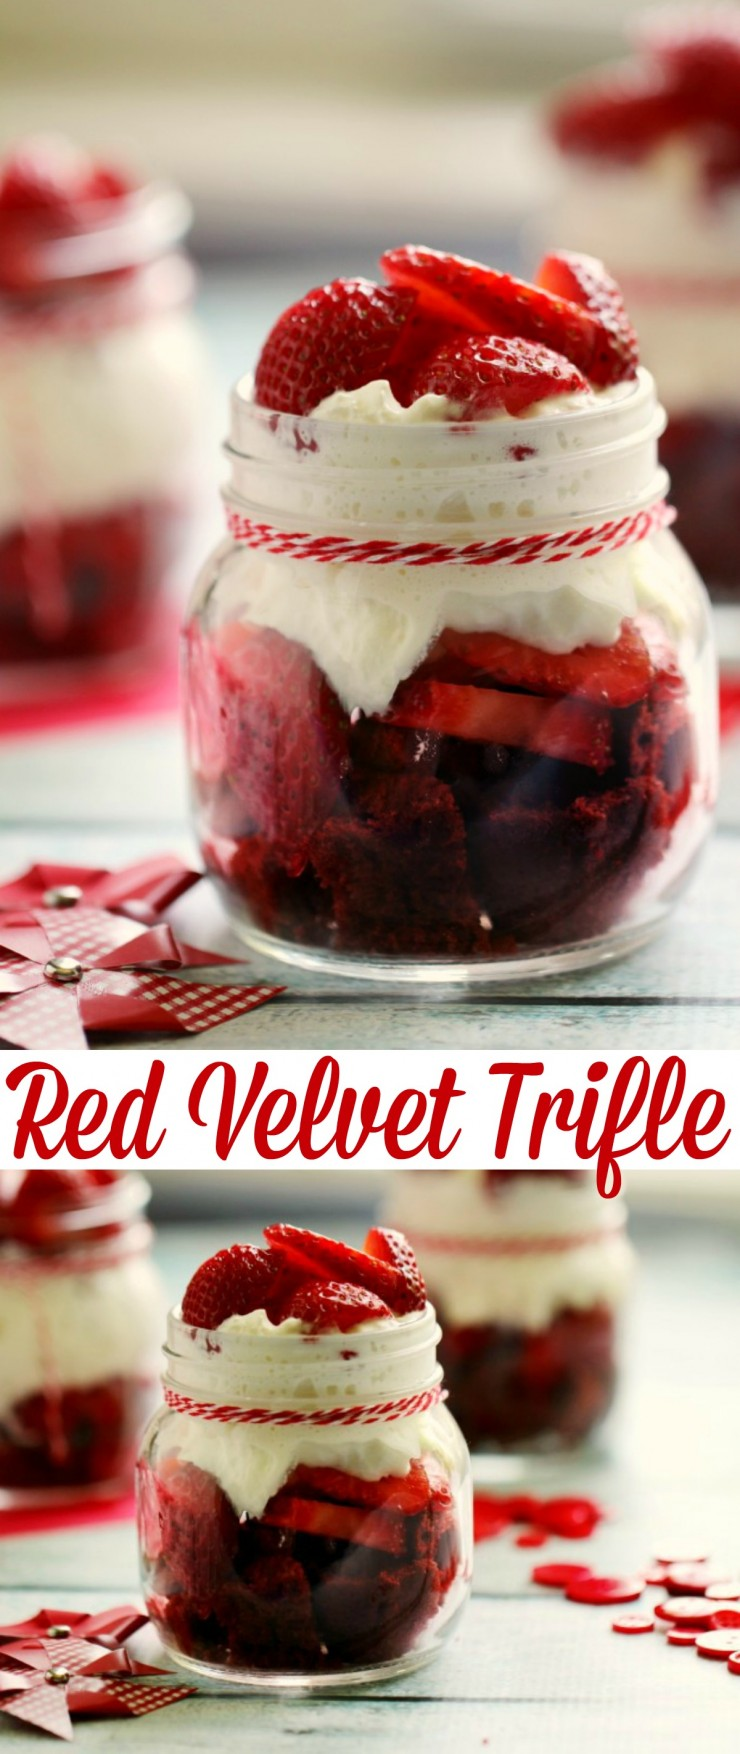 This Red Velvet Trifle is a super easy dessert recipe perfect for dinner parties, picnics and just because. A great way to celebrate Canada Day Too!